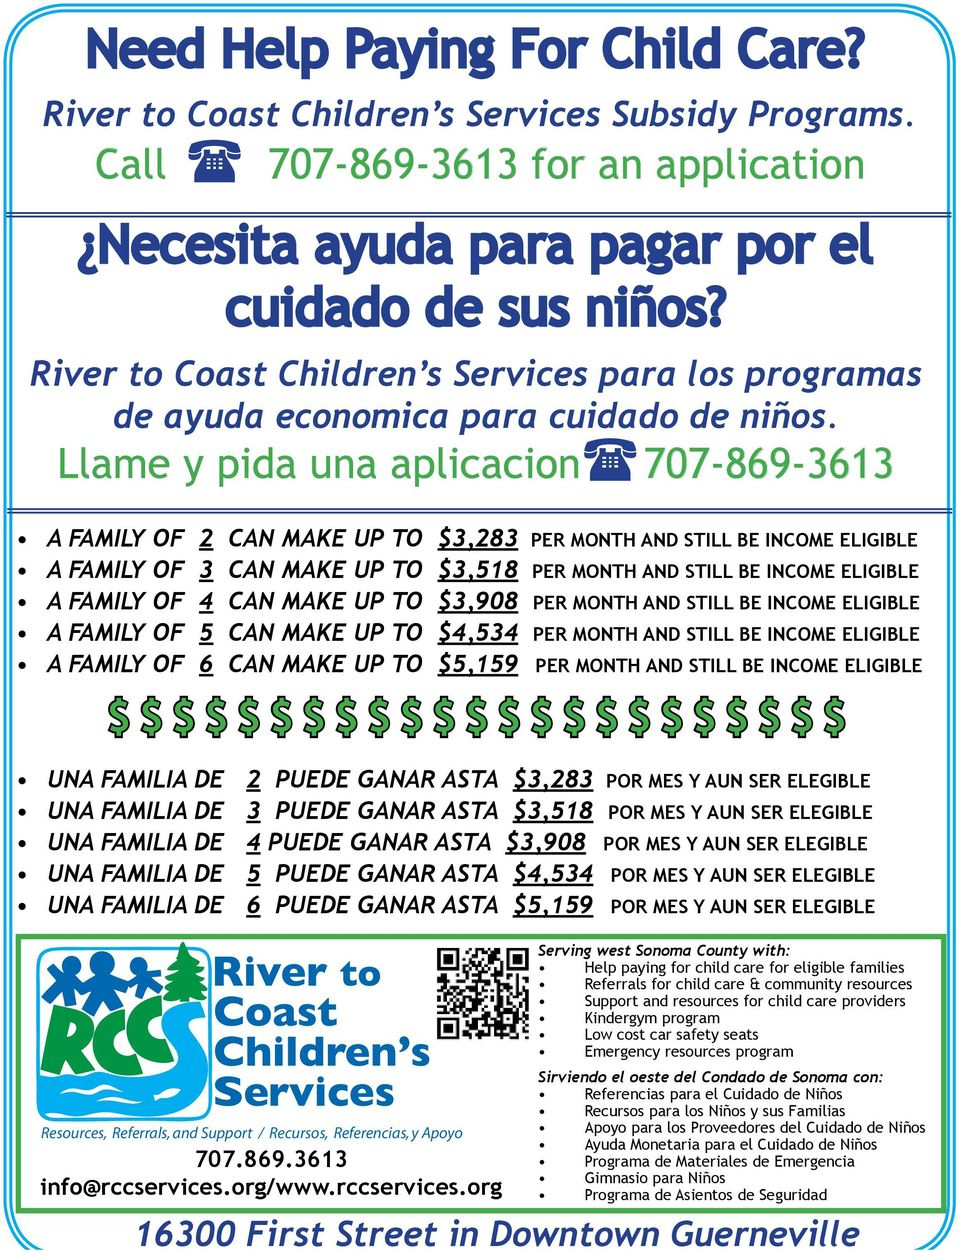 Llame y pida una aplicacion 707-869-3613 A FAmily of 2 CAn make up to $3,283 per month and still be income eligible A FAmily of 3 CAn make up to $3,518 per month and still be income eligible A FAmily